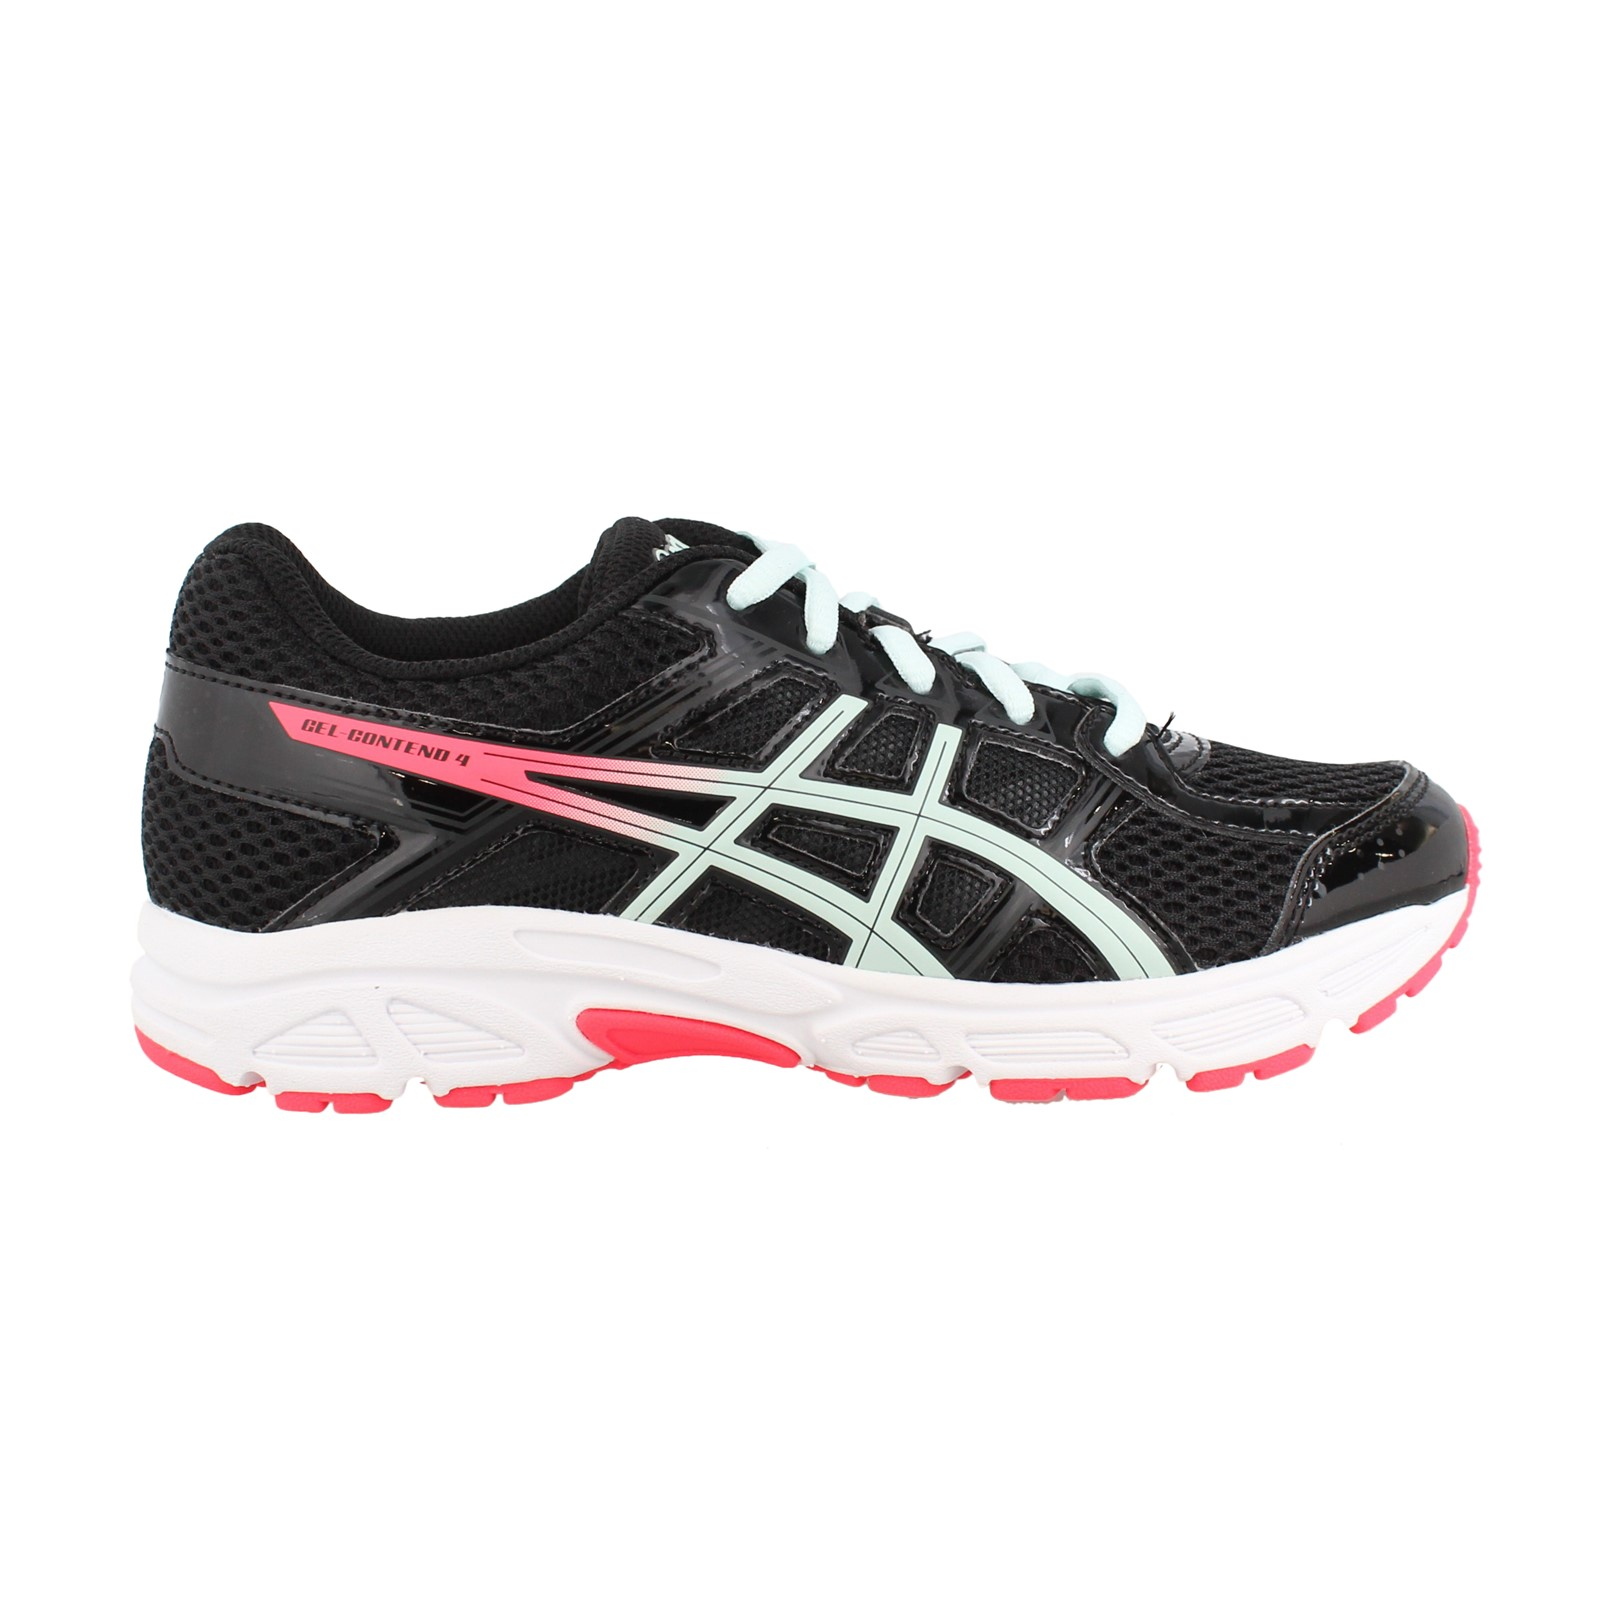 Girl's Asics, Gel Contend 4 GS Sneaker - Big Kid